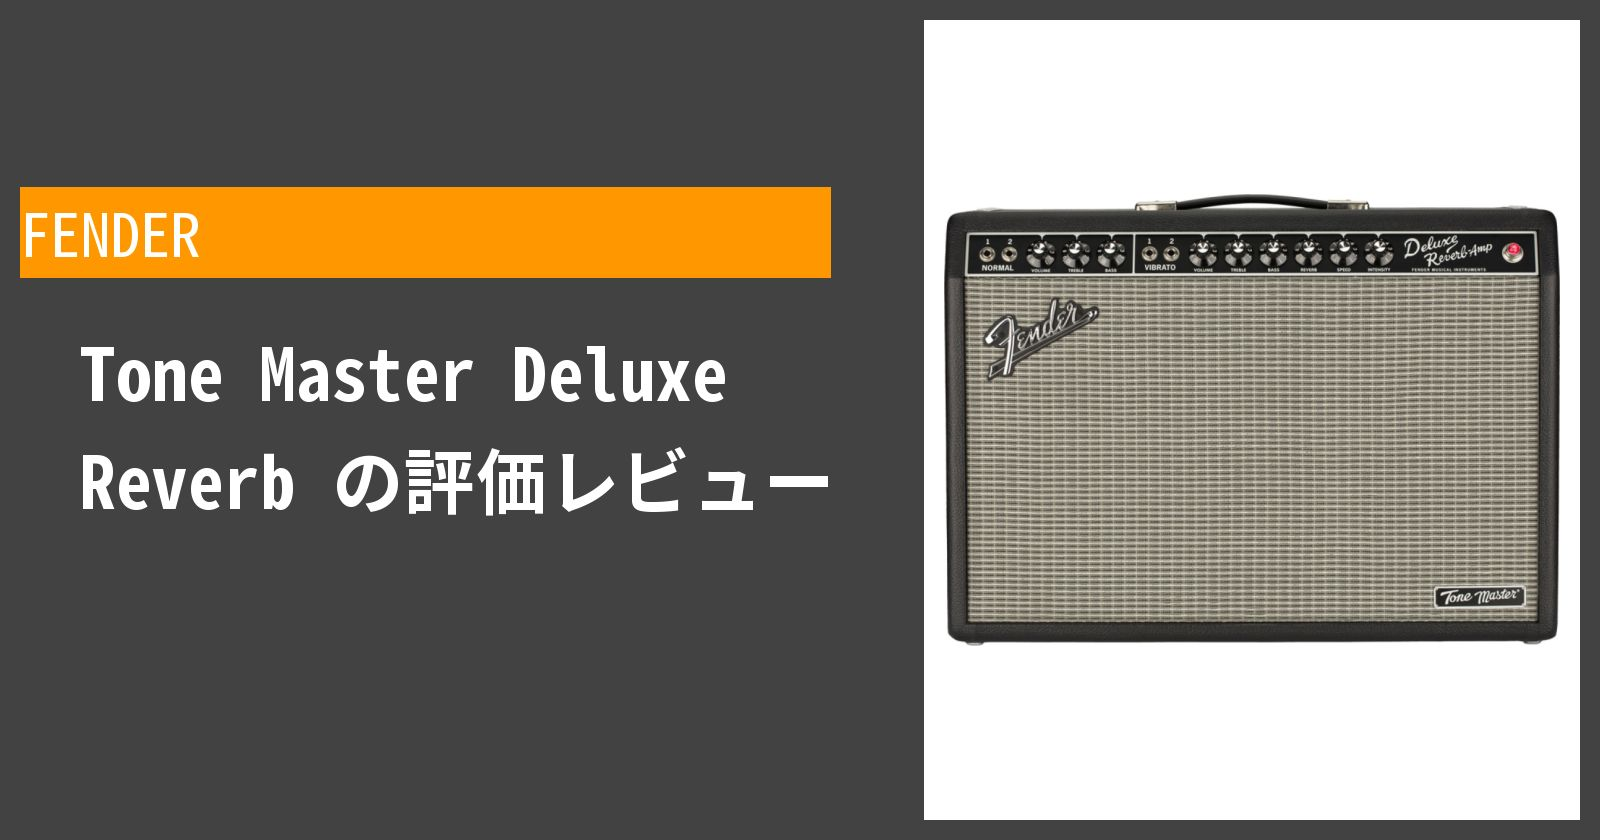 Tone Master Deluxe Reverbを徹底評価